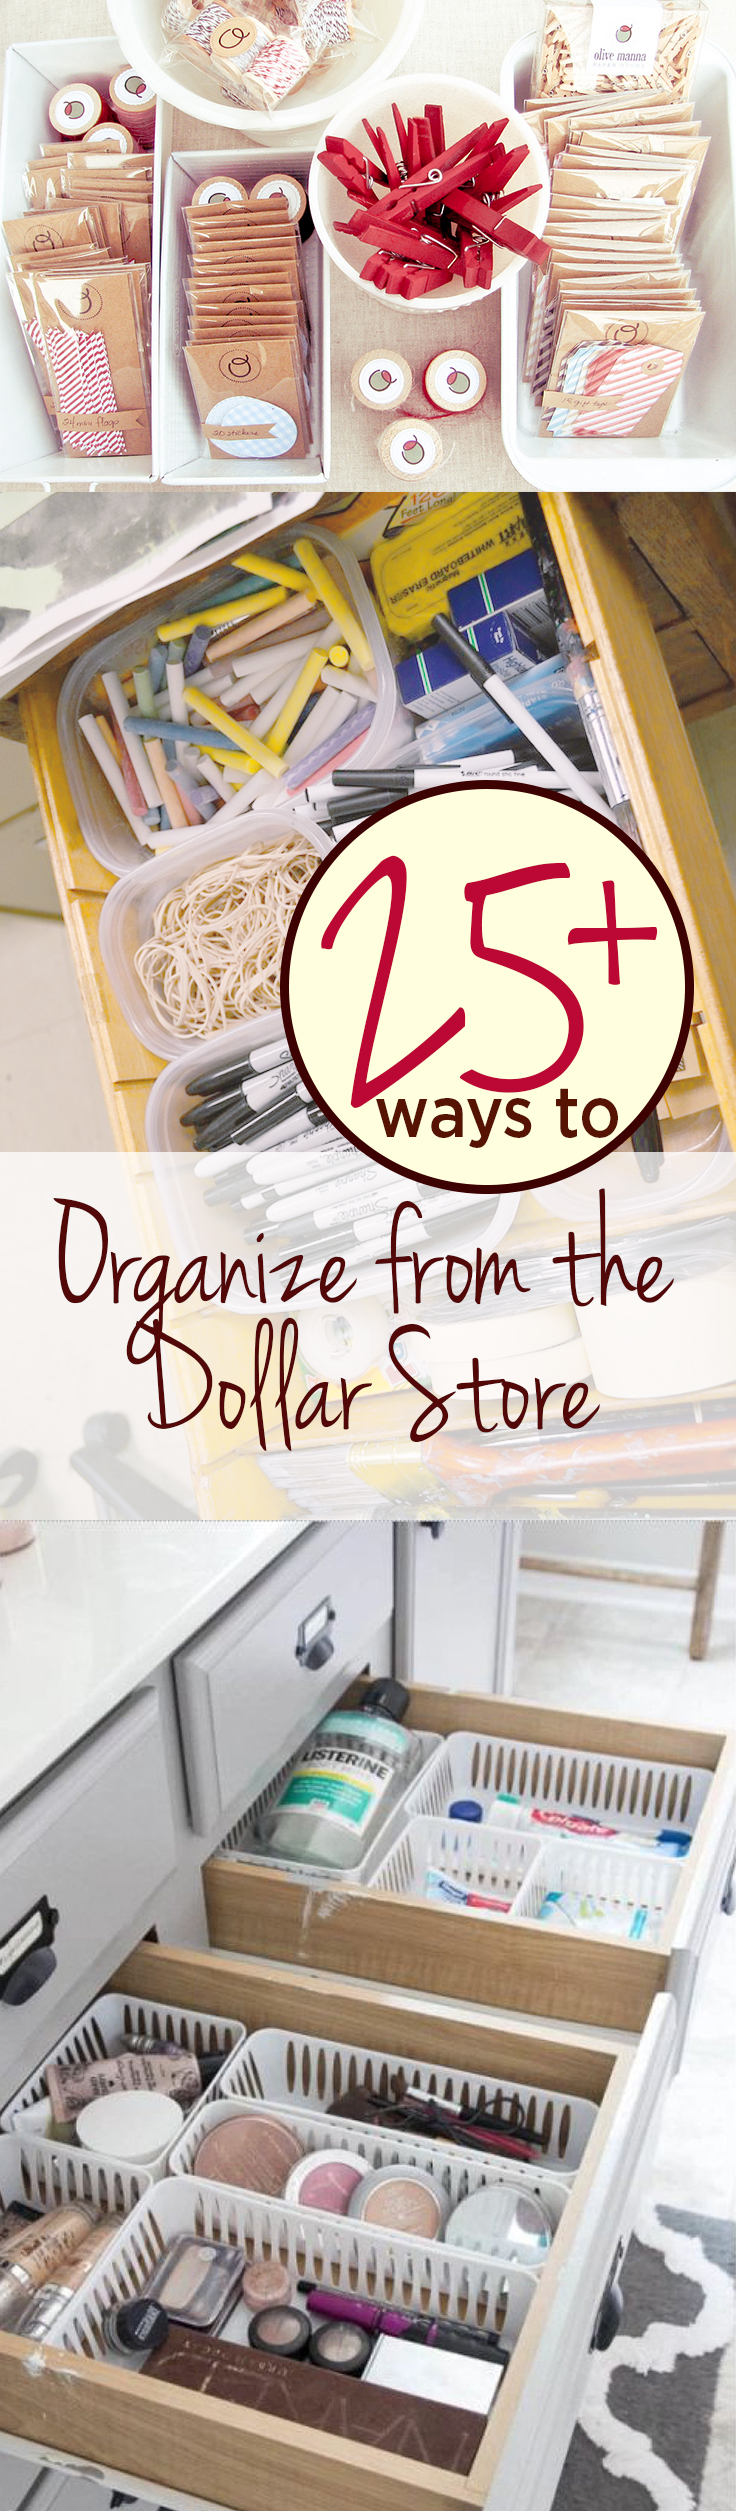 pin-25-ways-to-organize-from-the-dollar-store